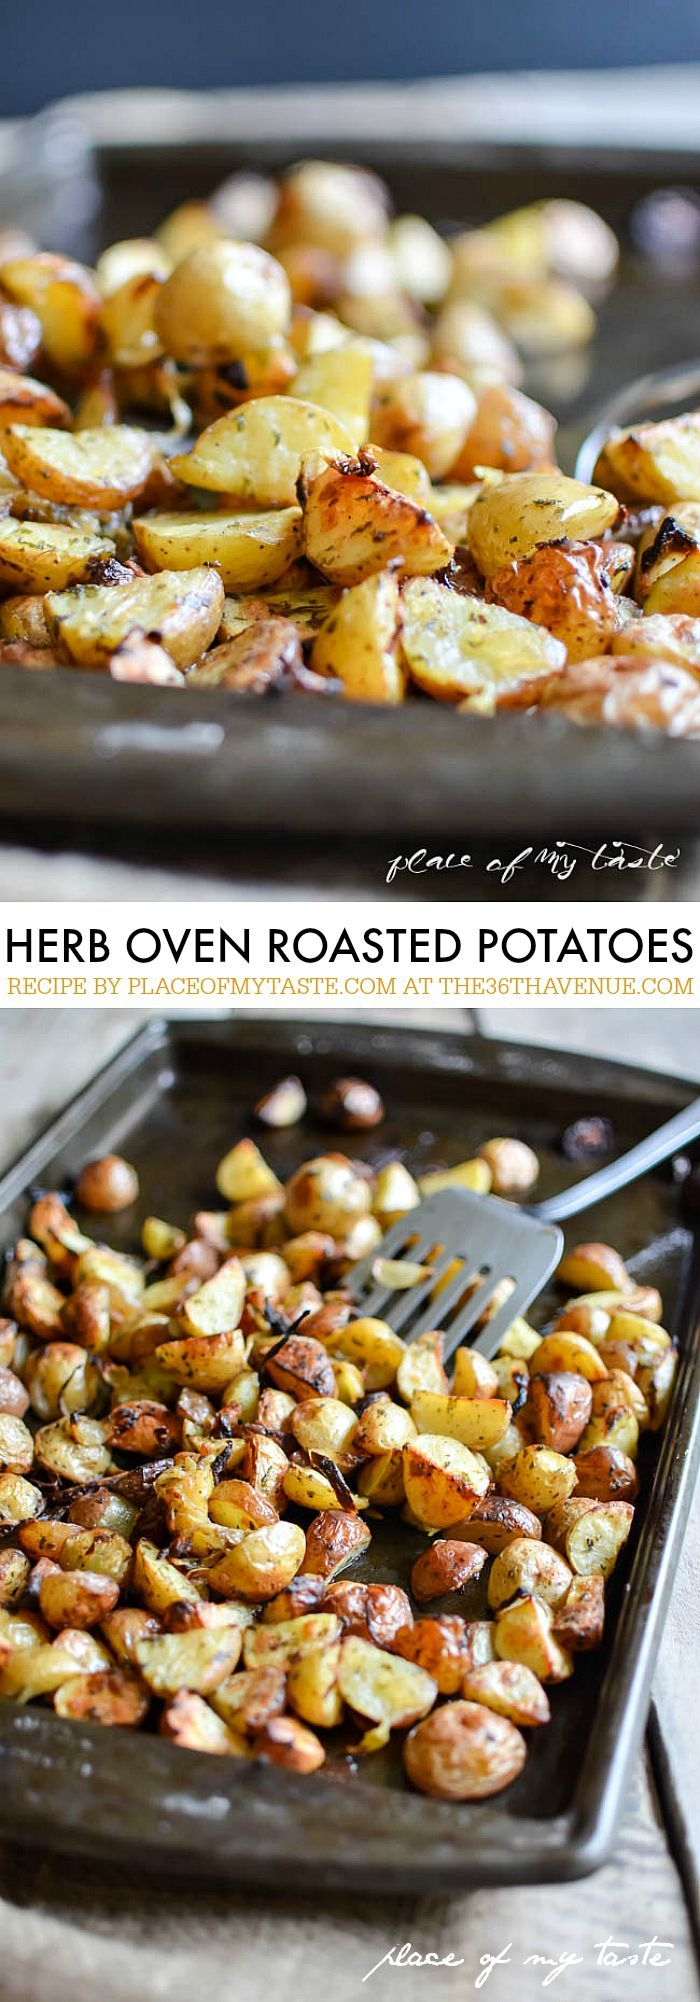 Recipes -  Herb Oven Roasted Potatoes by placeofmytaste.com